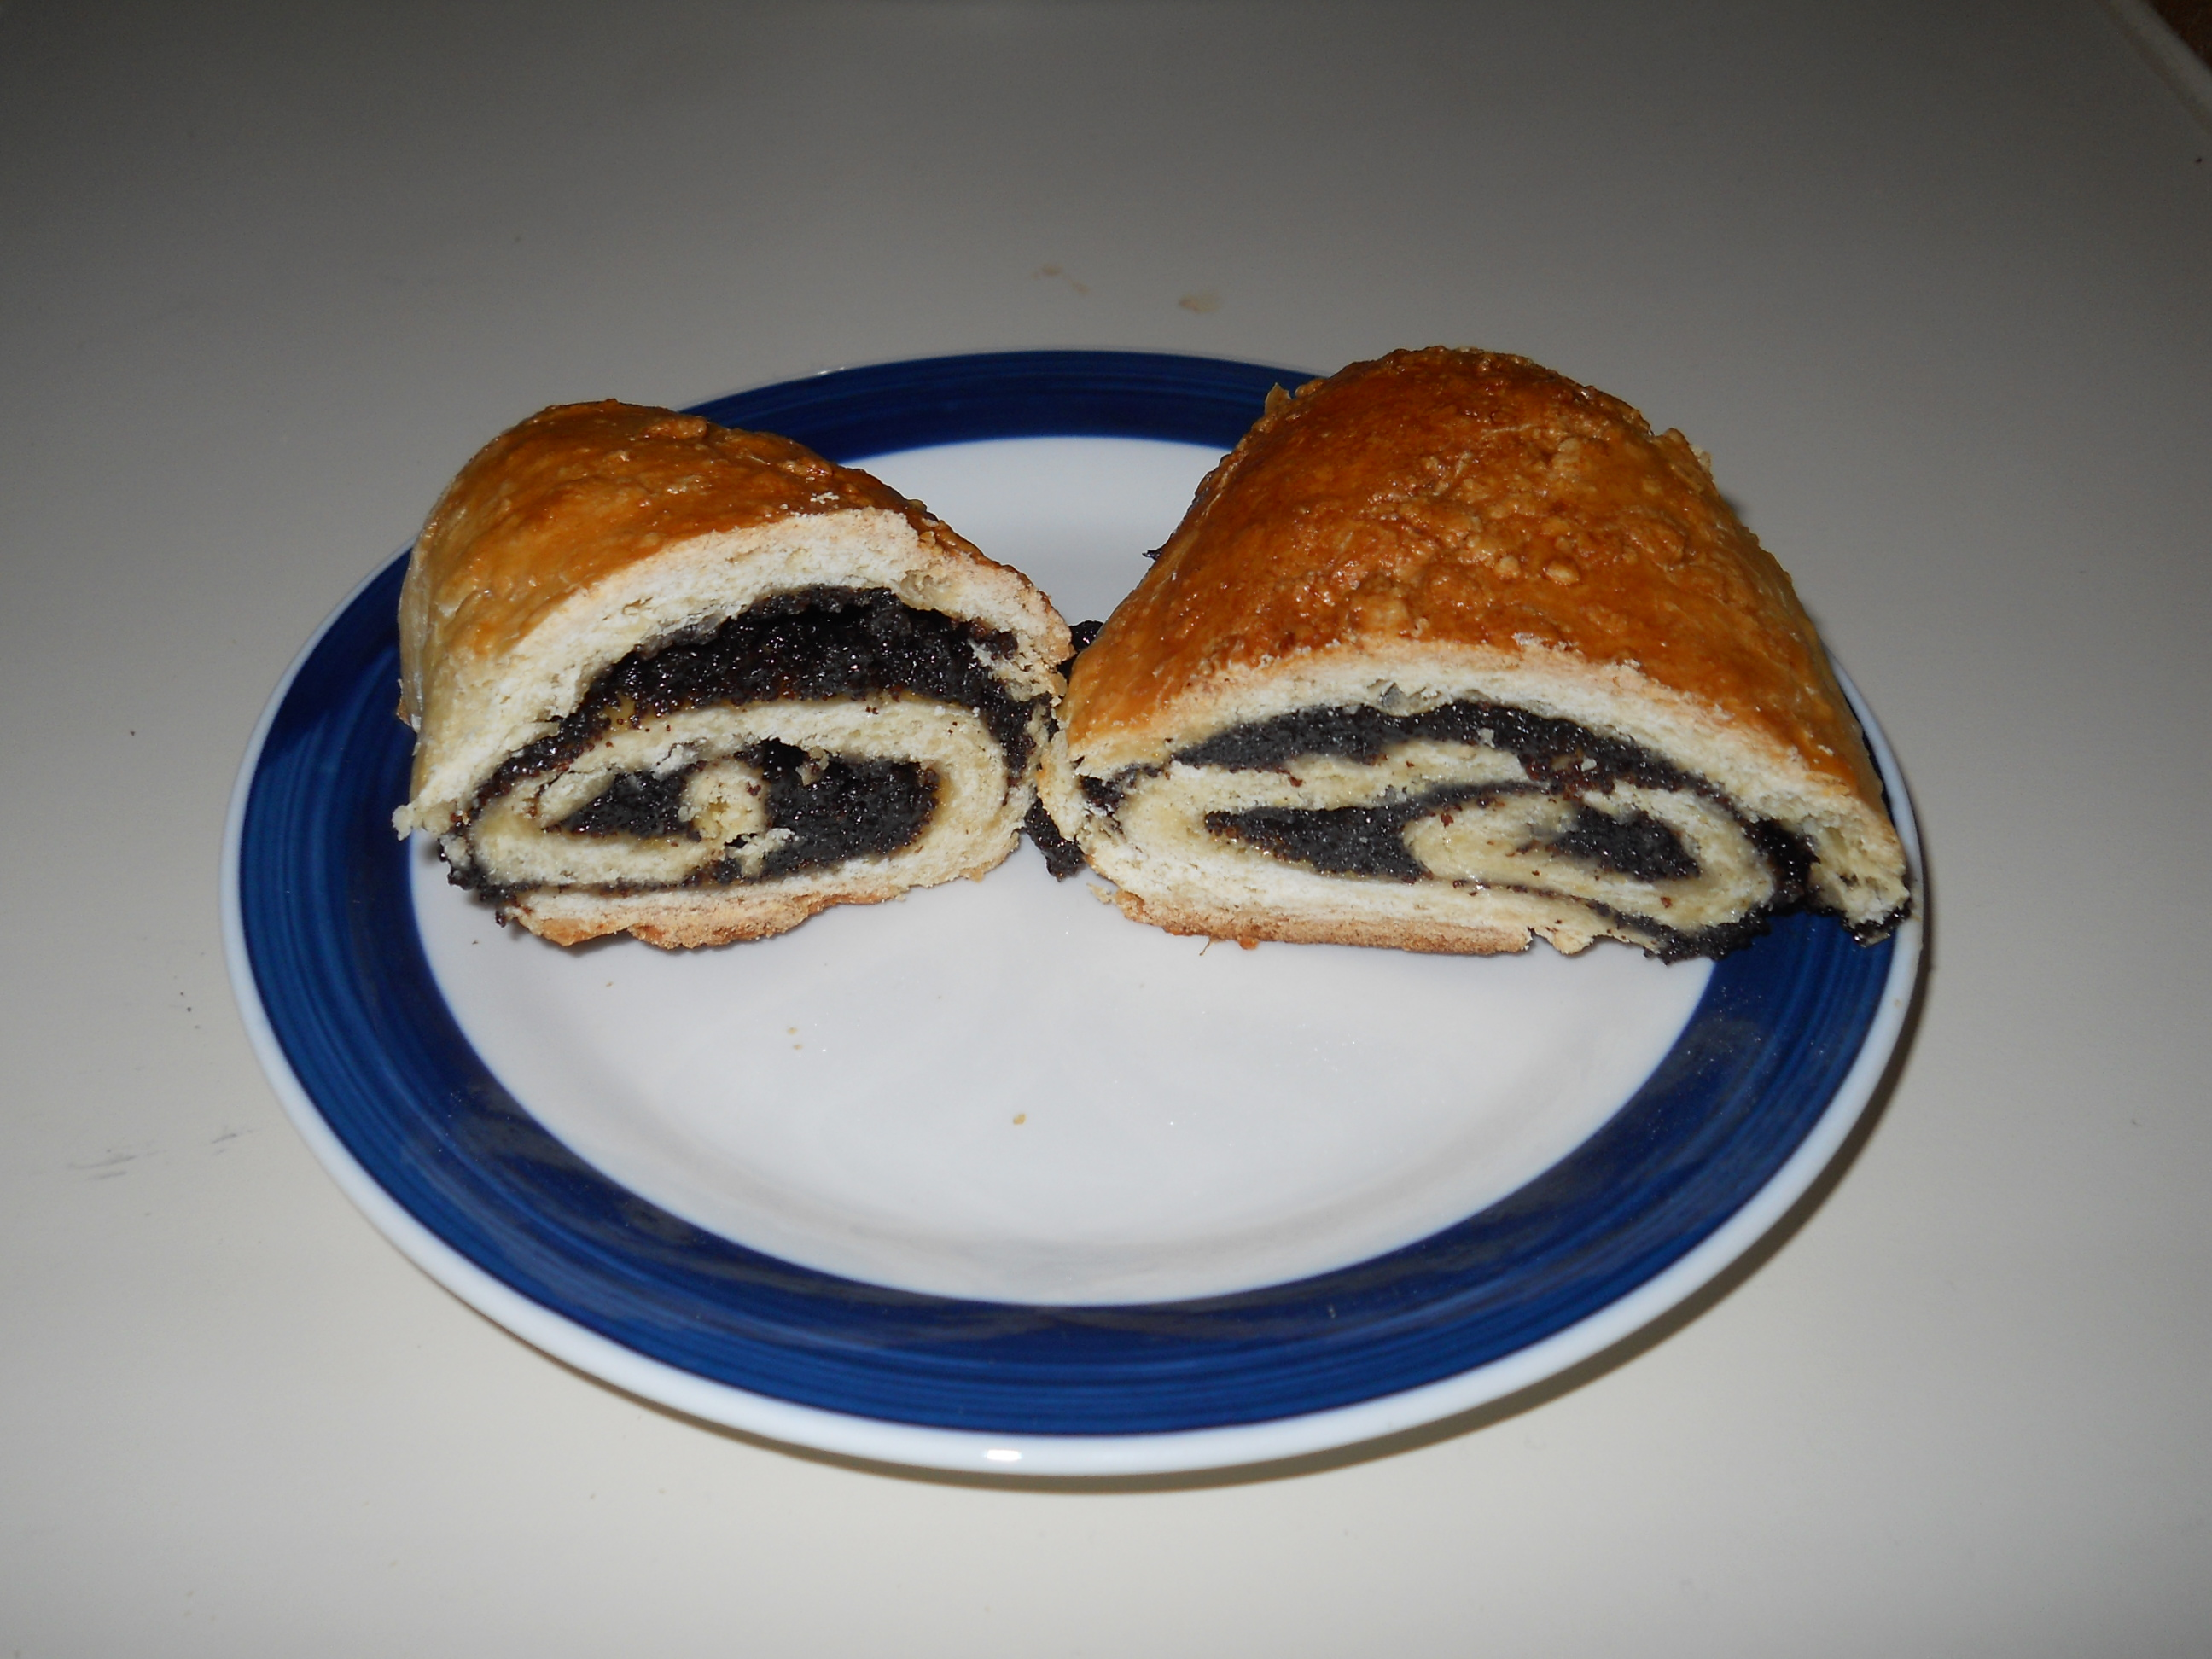 Final Product: The Poppy Seed Kolache!